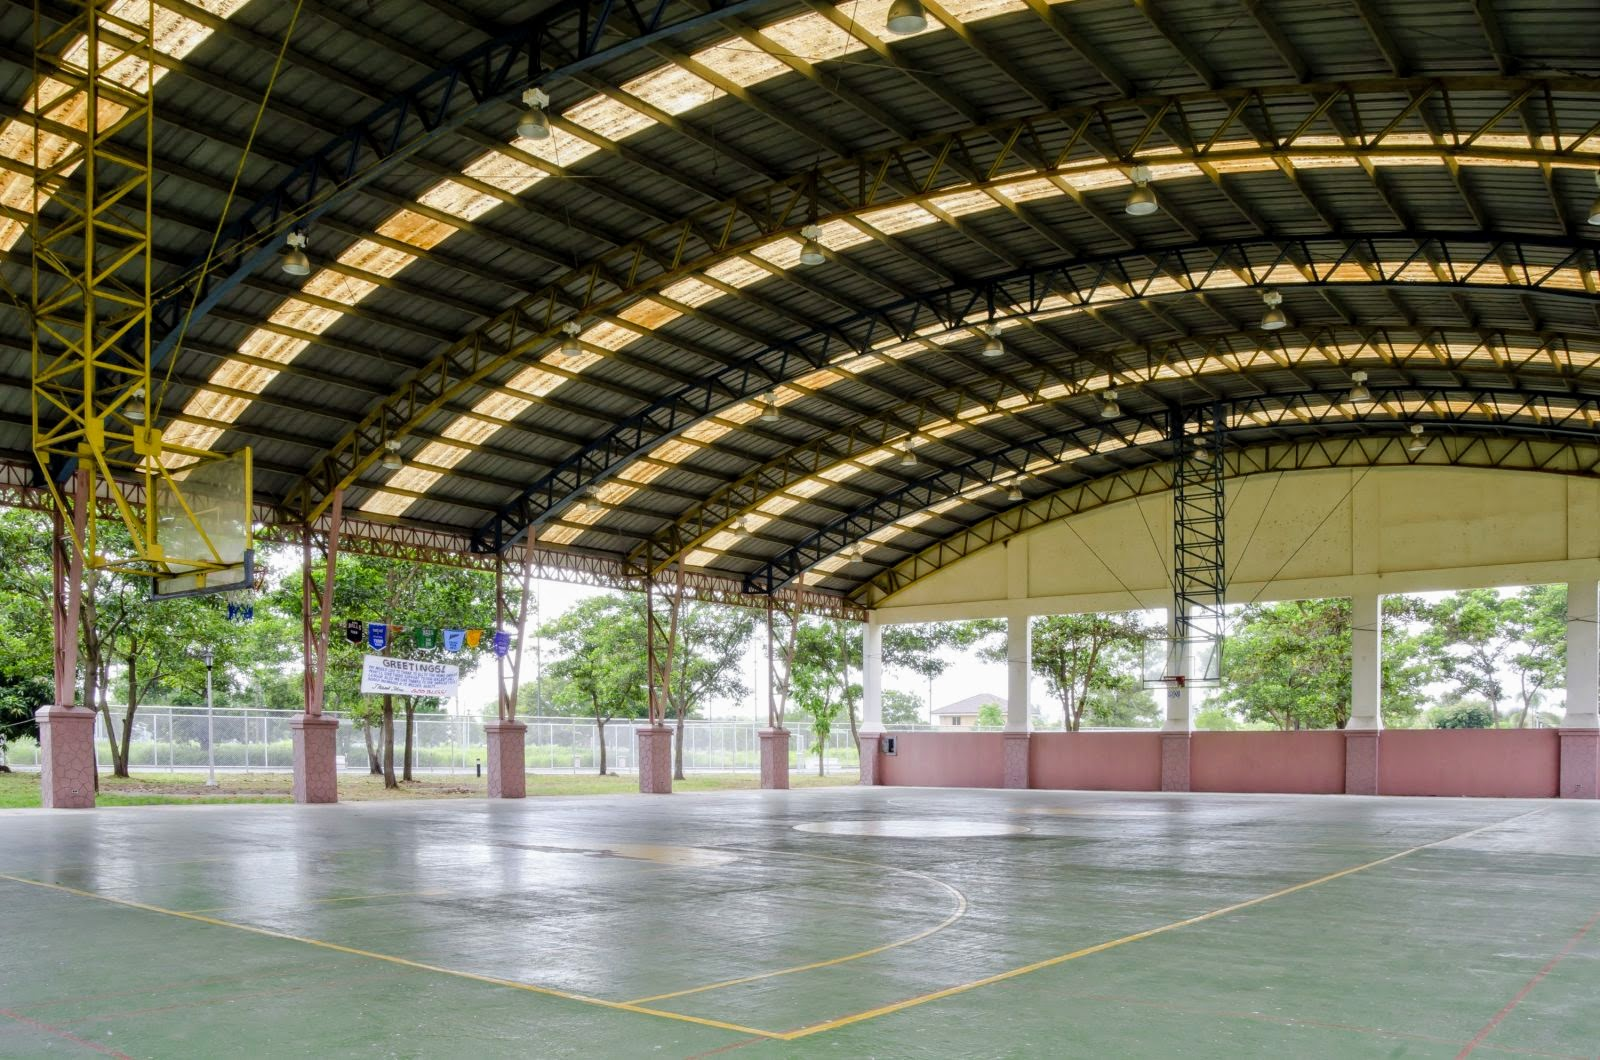 Heritage Angeles basketball court